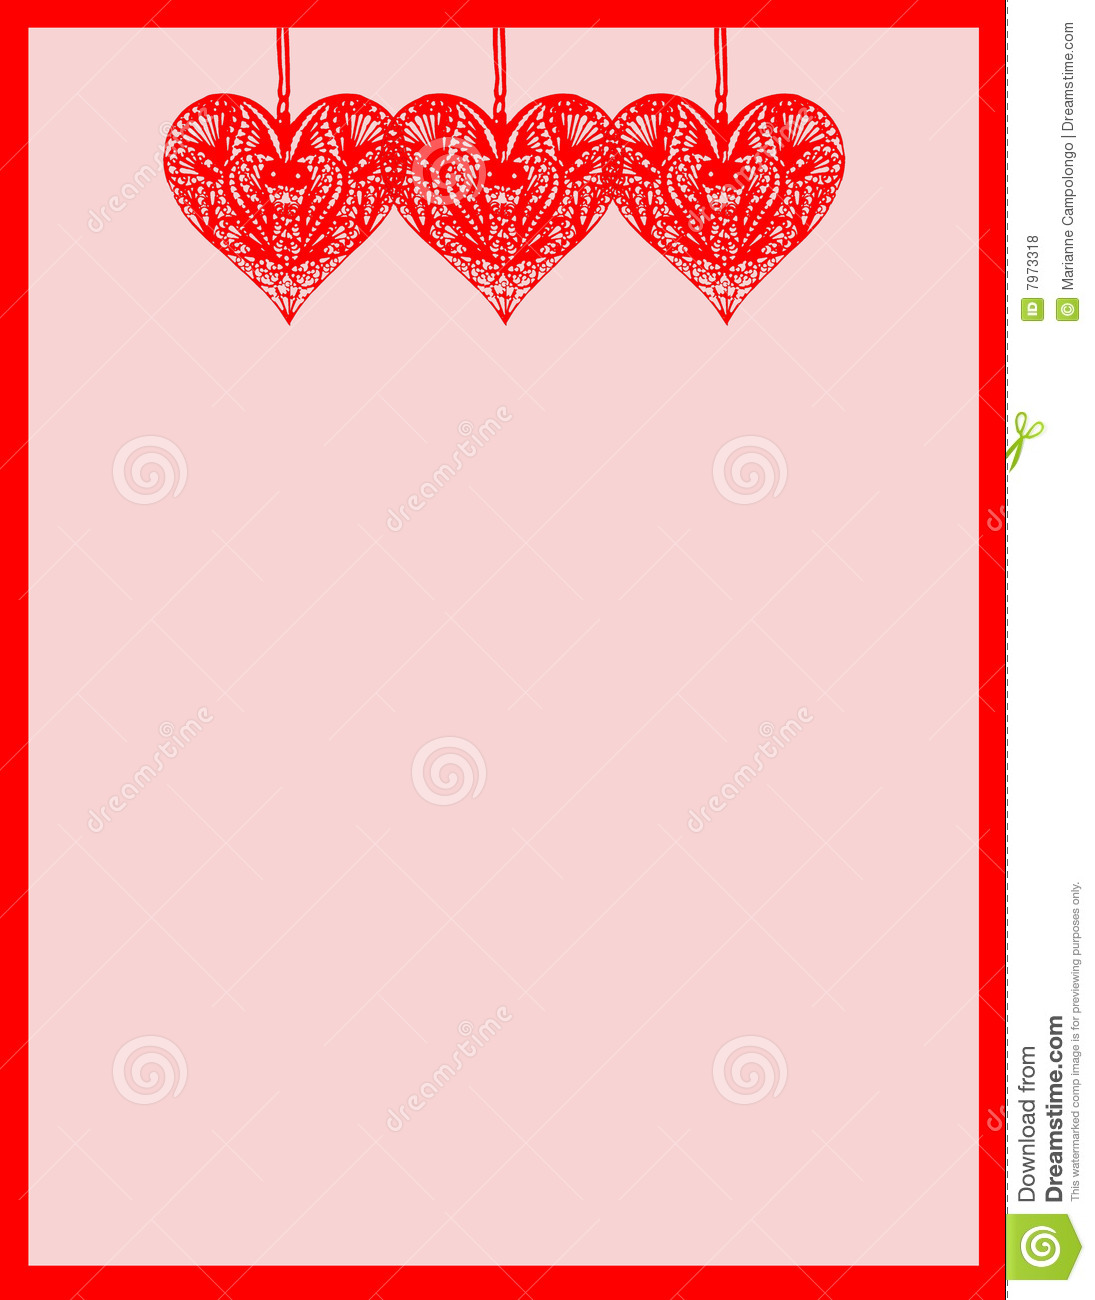 Colorful stationary notepaper with hearts for valentine's day.